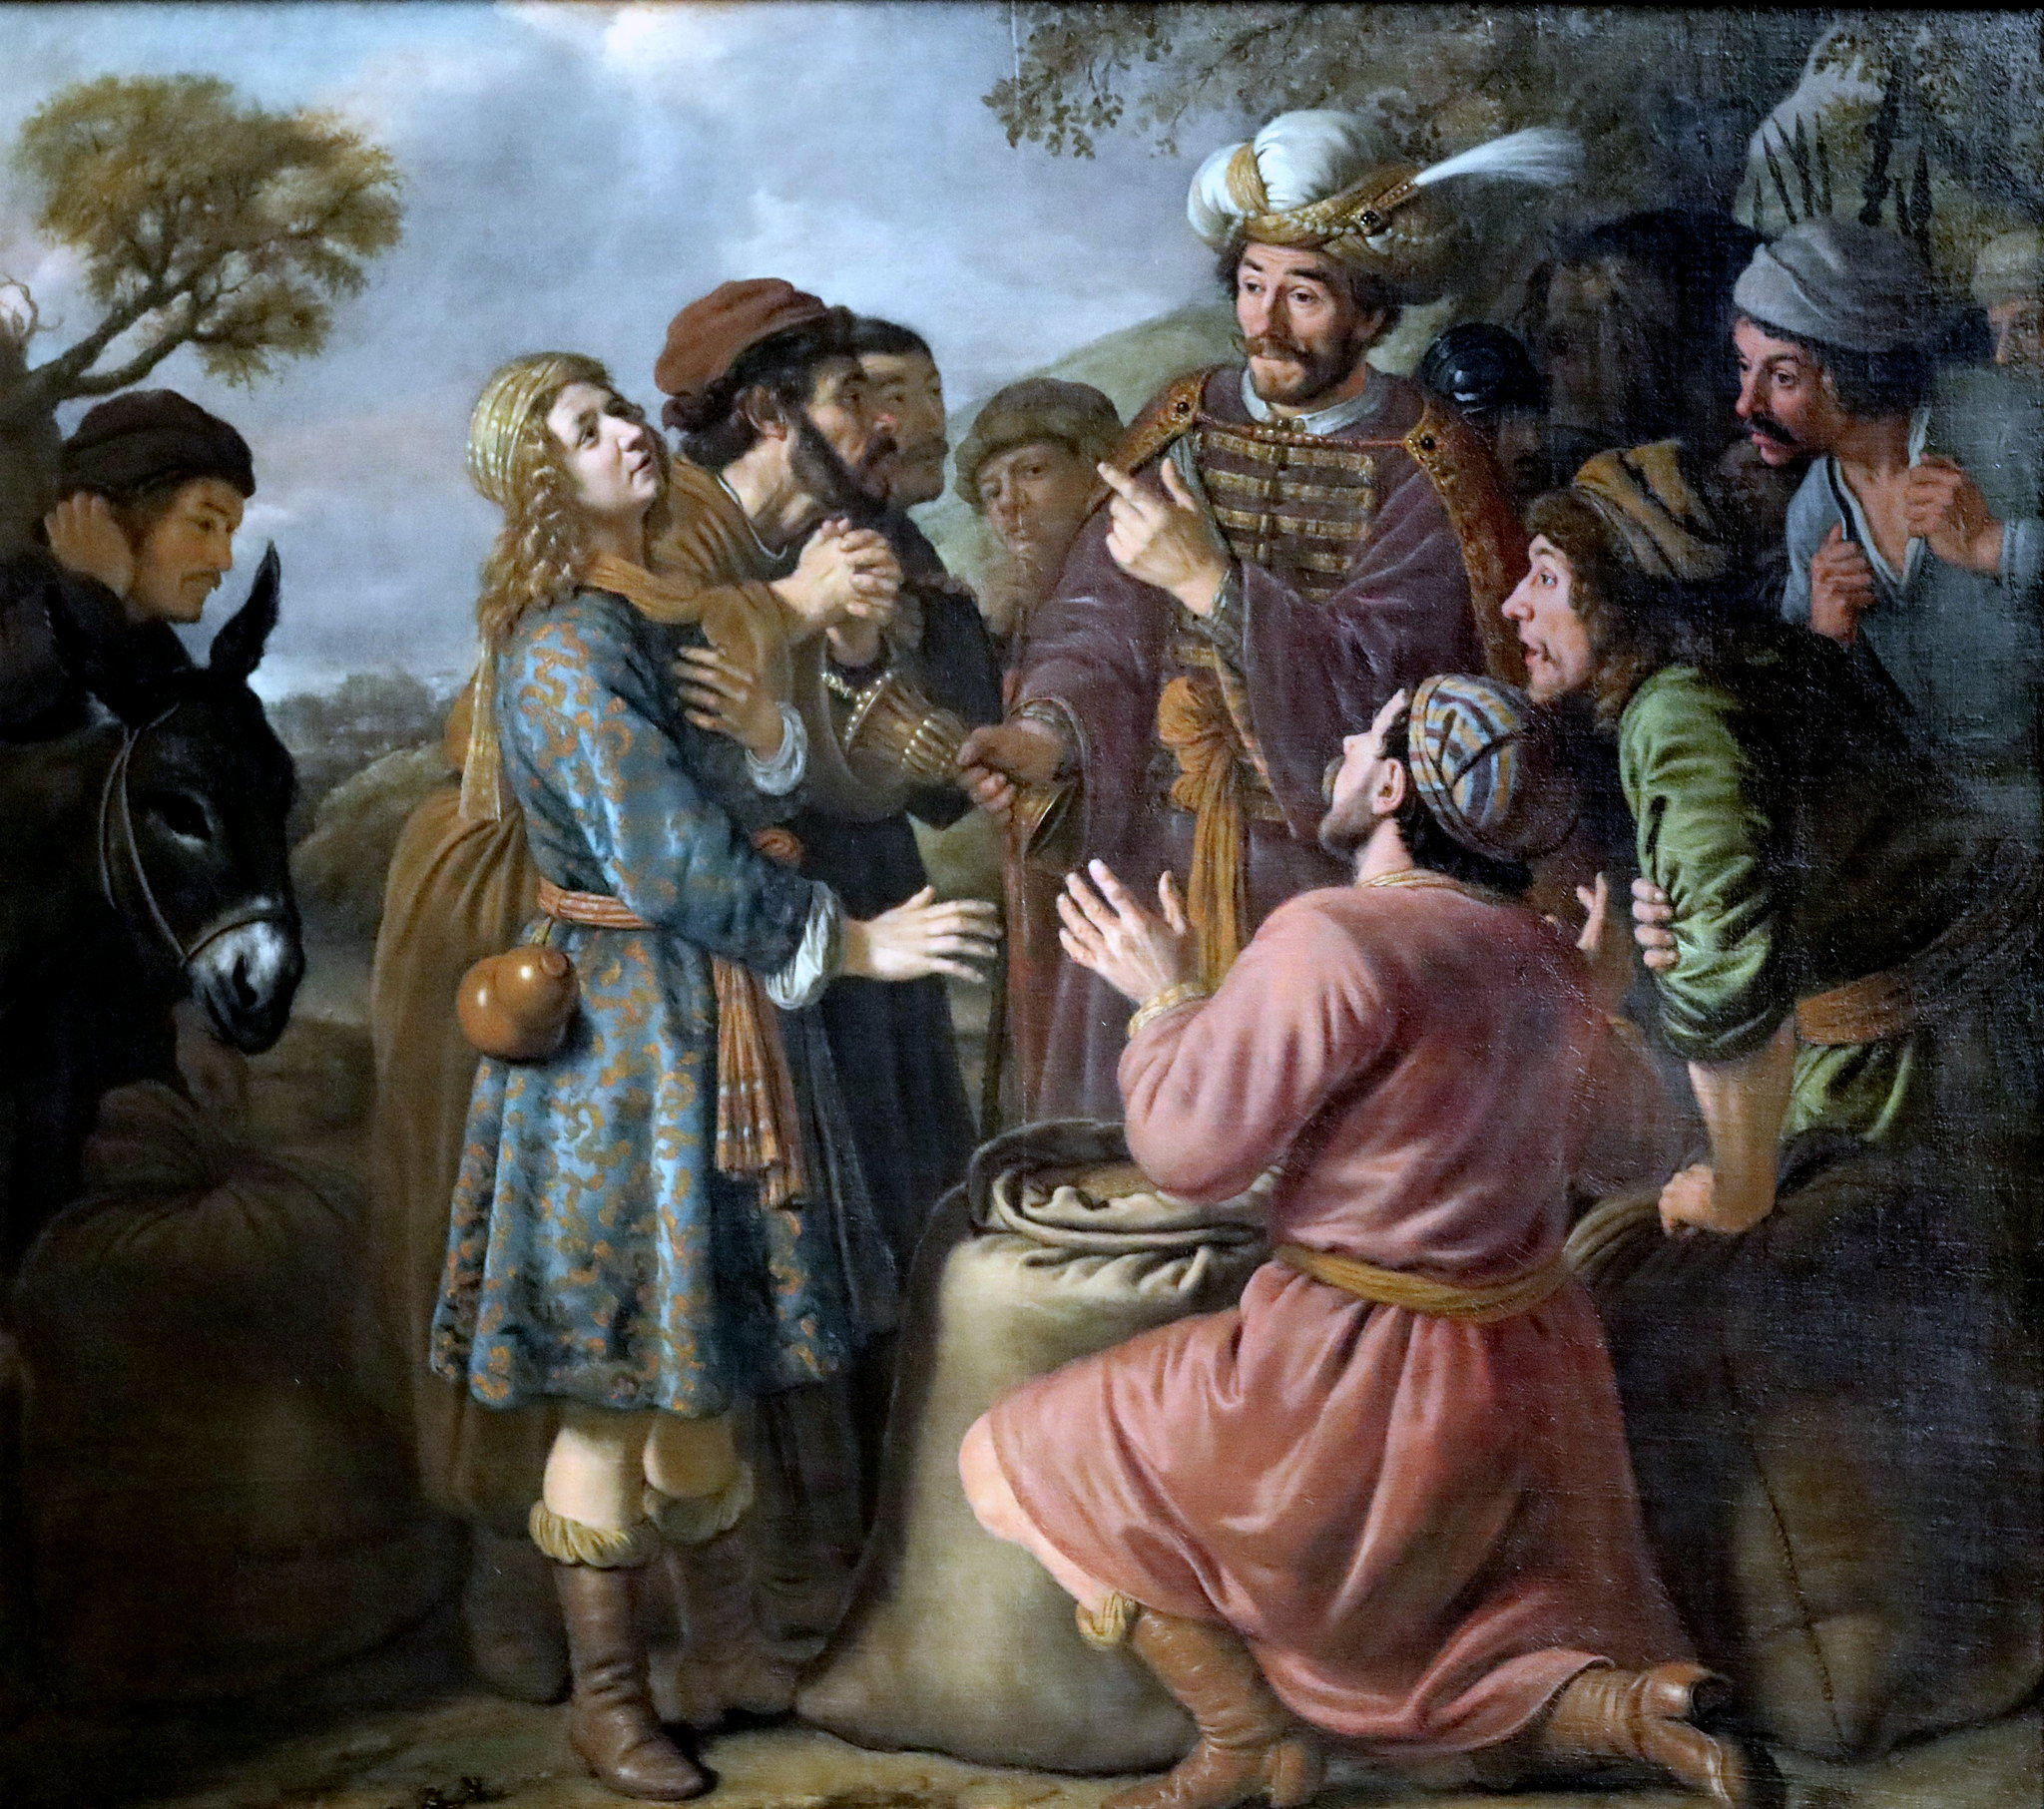 jan victors 1653 The Finding of the cup in Benjamin's sack Gemaldegalerie Alte Meister Dresde photo JL Mazieres